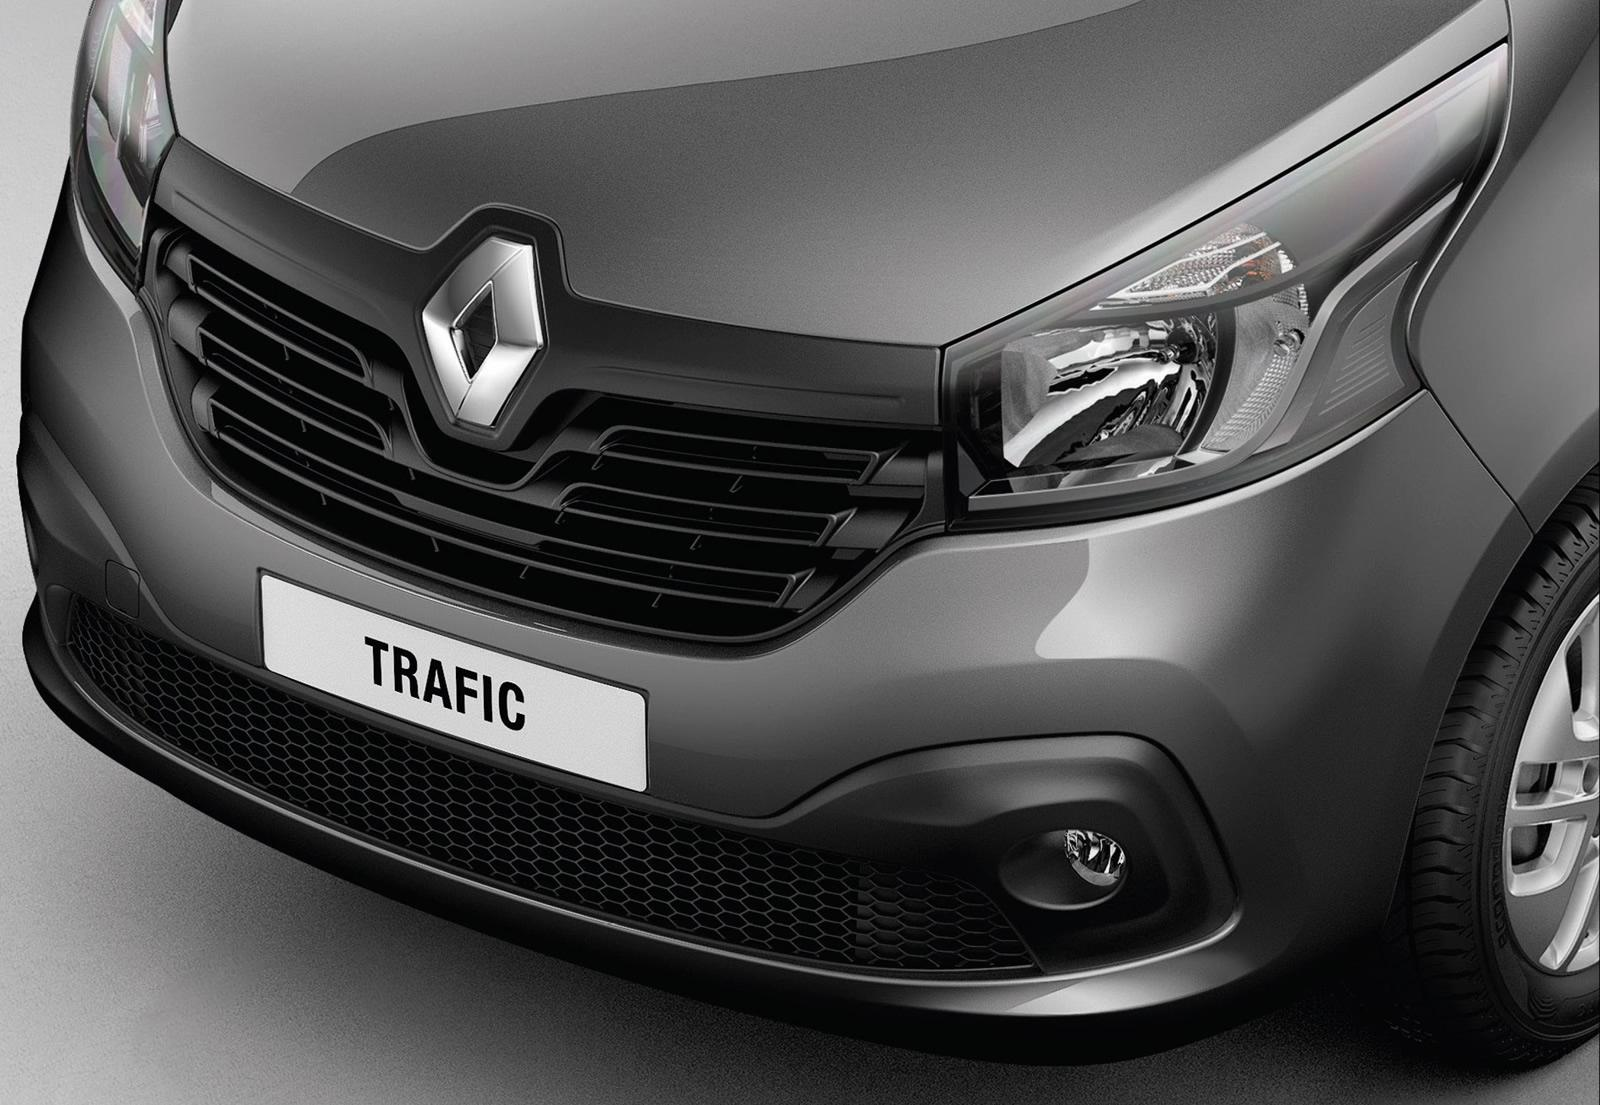 New Engines For Sale >> Renault's New Trafic Van Revealed, Will Get New 1.6L Turbo Diesel Engines - autoevolution